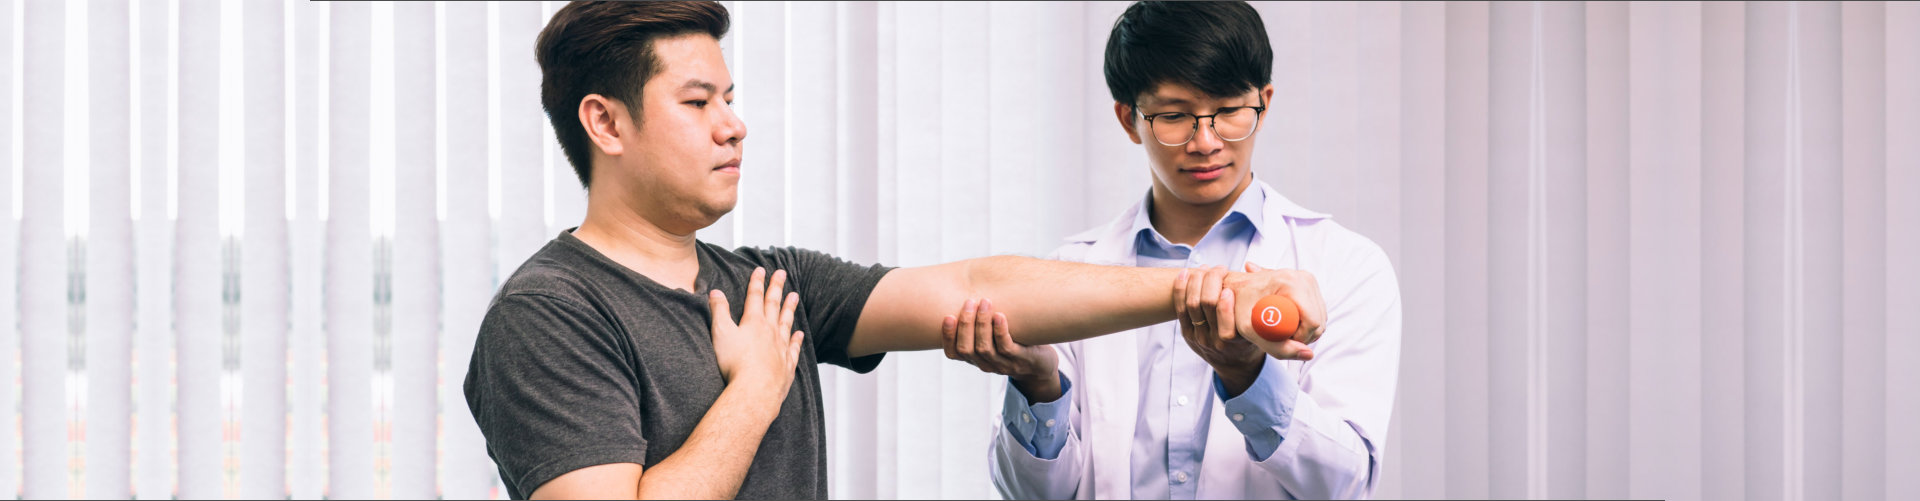 Asian young male physiotherapist helping patient with lifting dumbbells exercises in clinic.